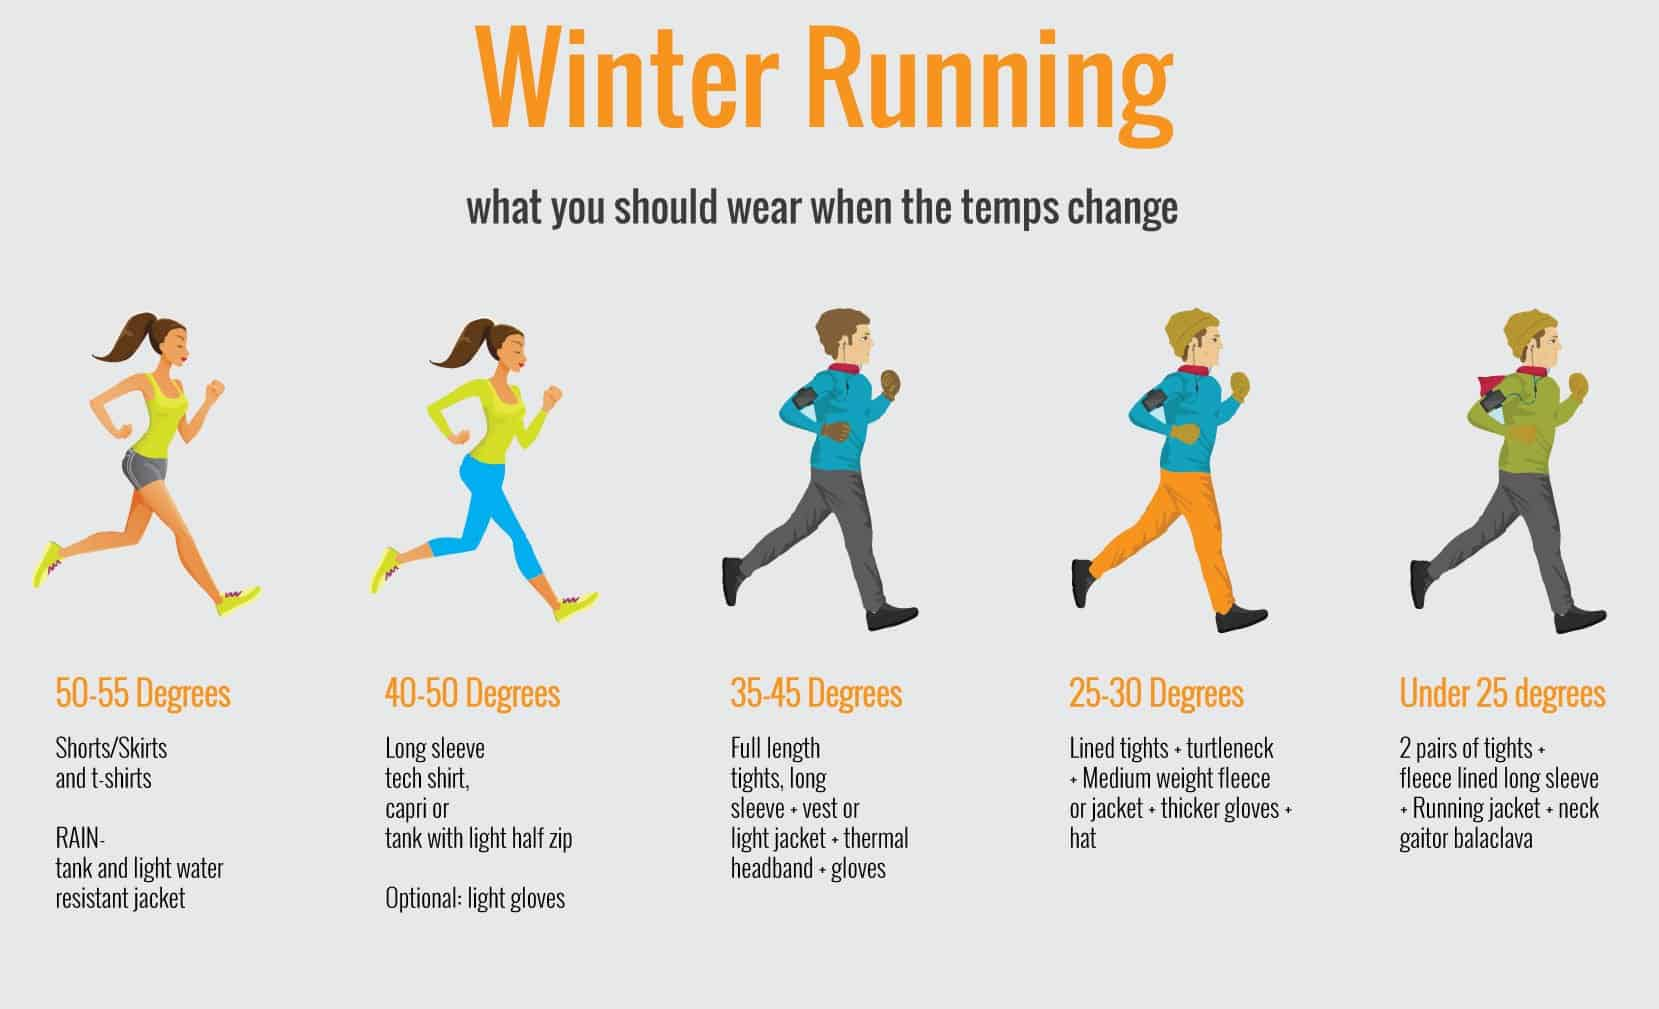 What to wear when running in winter. We break down what you should wear for each temperature in this nifty infographic.